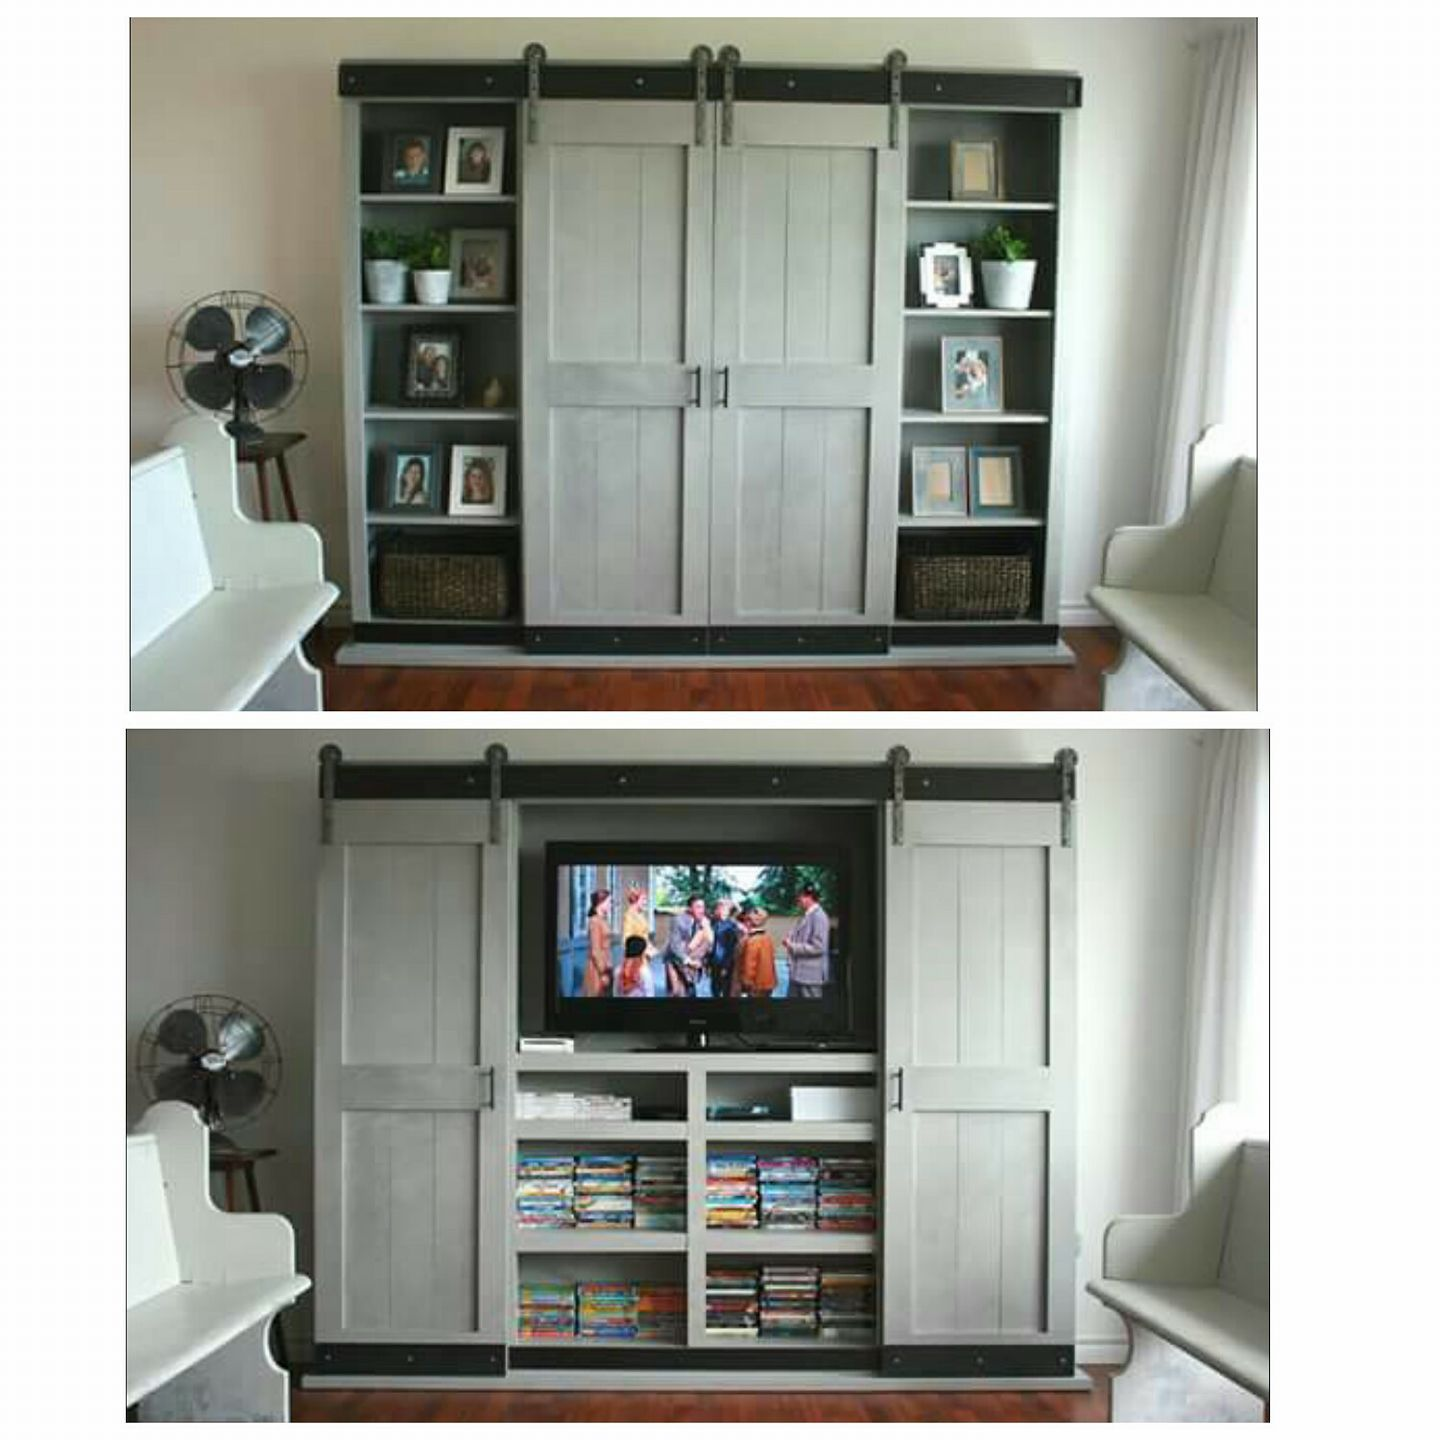 Ana White Sliding Door for TV DIY Projects